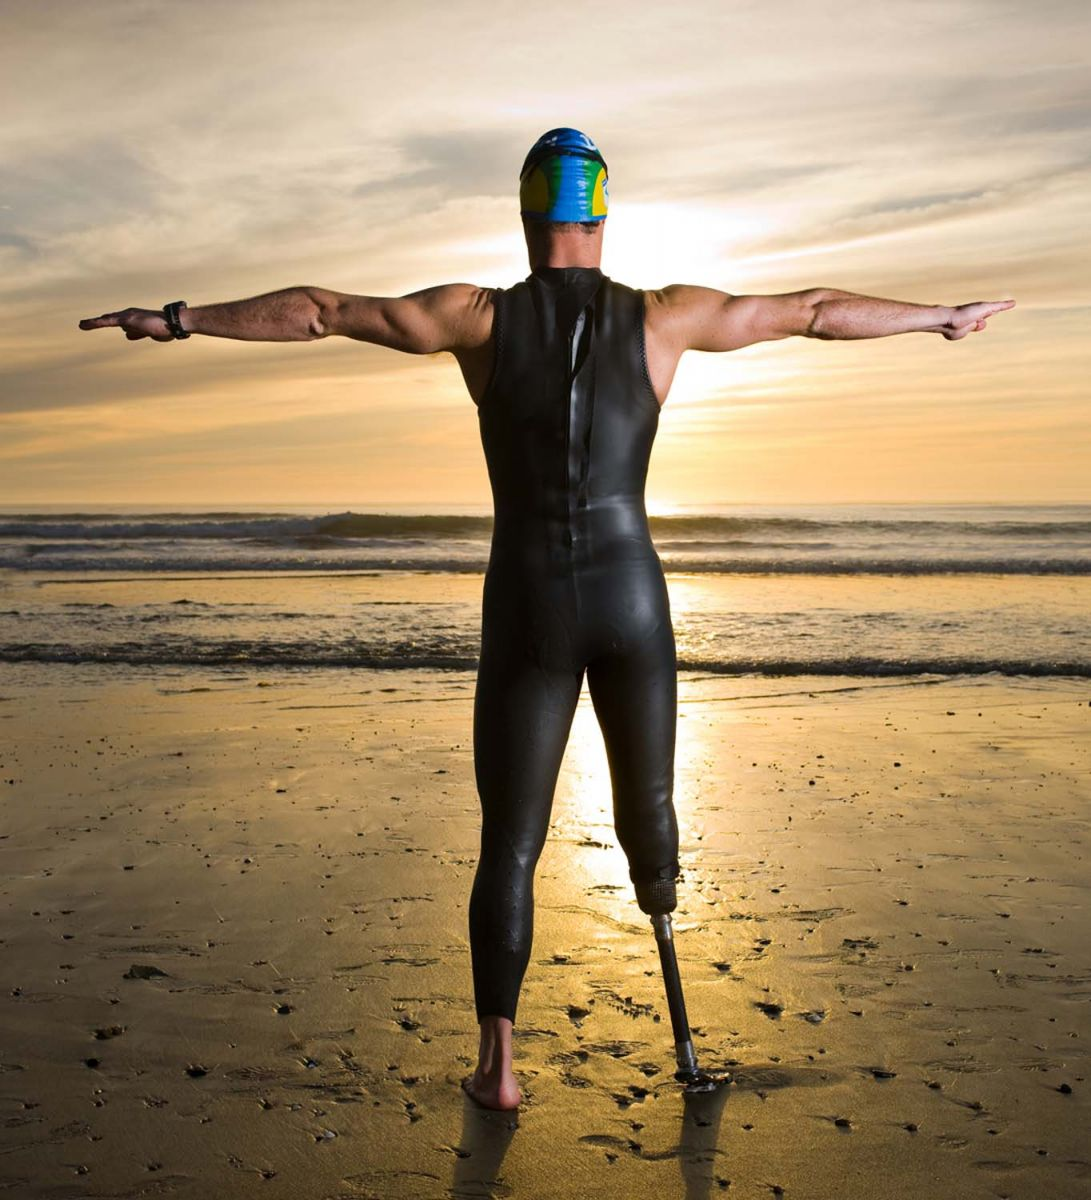 images/Prosthetic%20Swimmer%20Pacific%20Medical.jpg